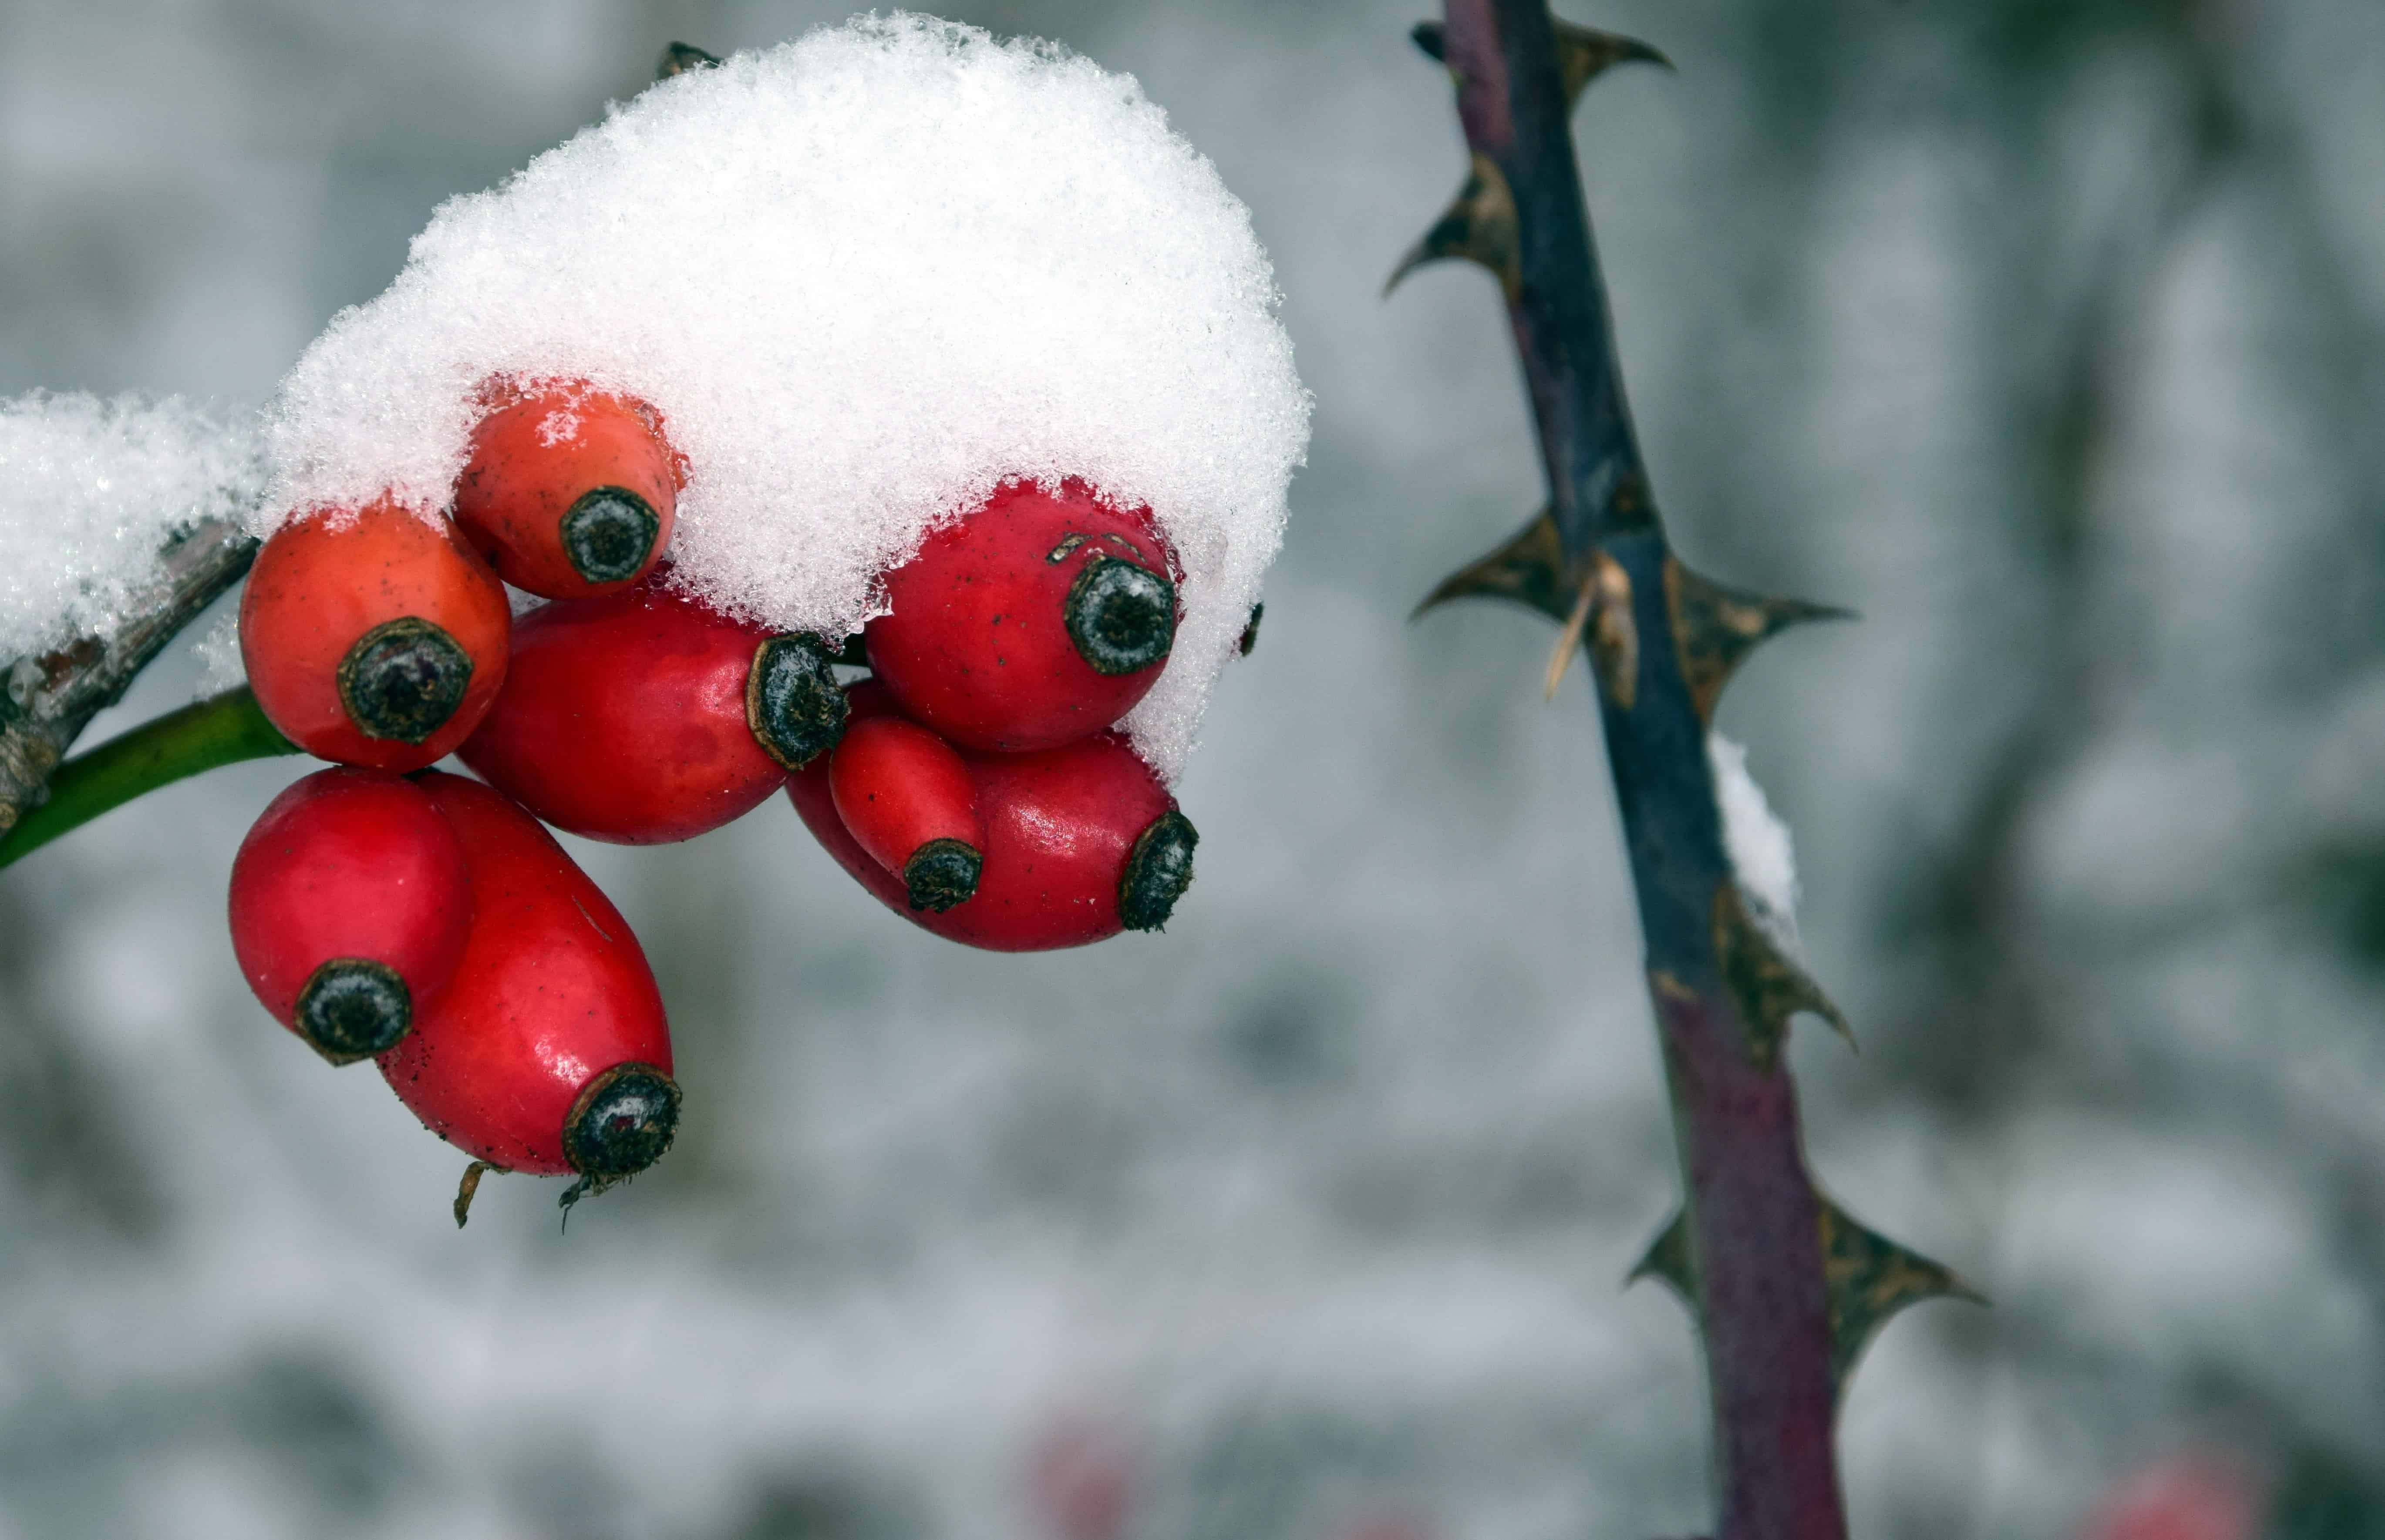 Image Libre Nature Arbre Rose Musquee Hiver Neige Froid Plante